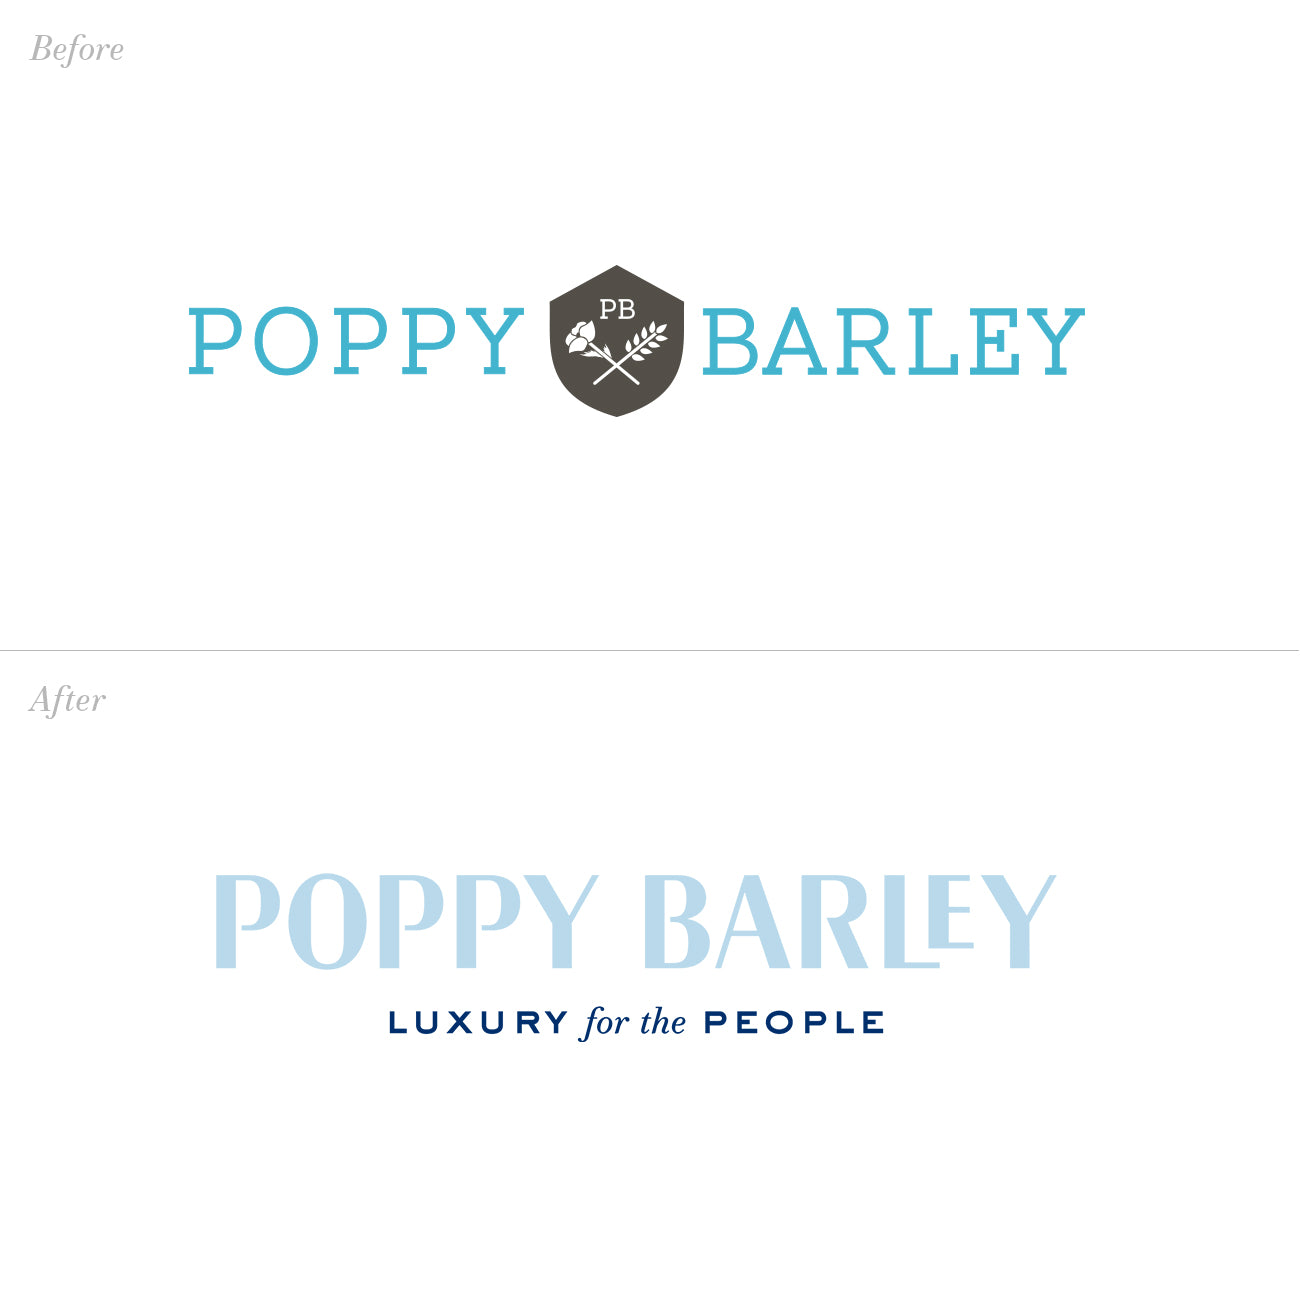 How to Build a Brand - Poppy Barley